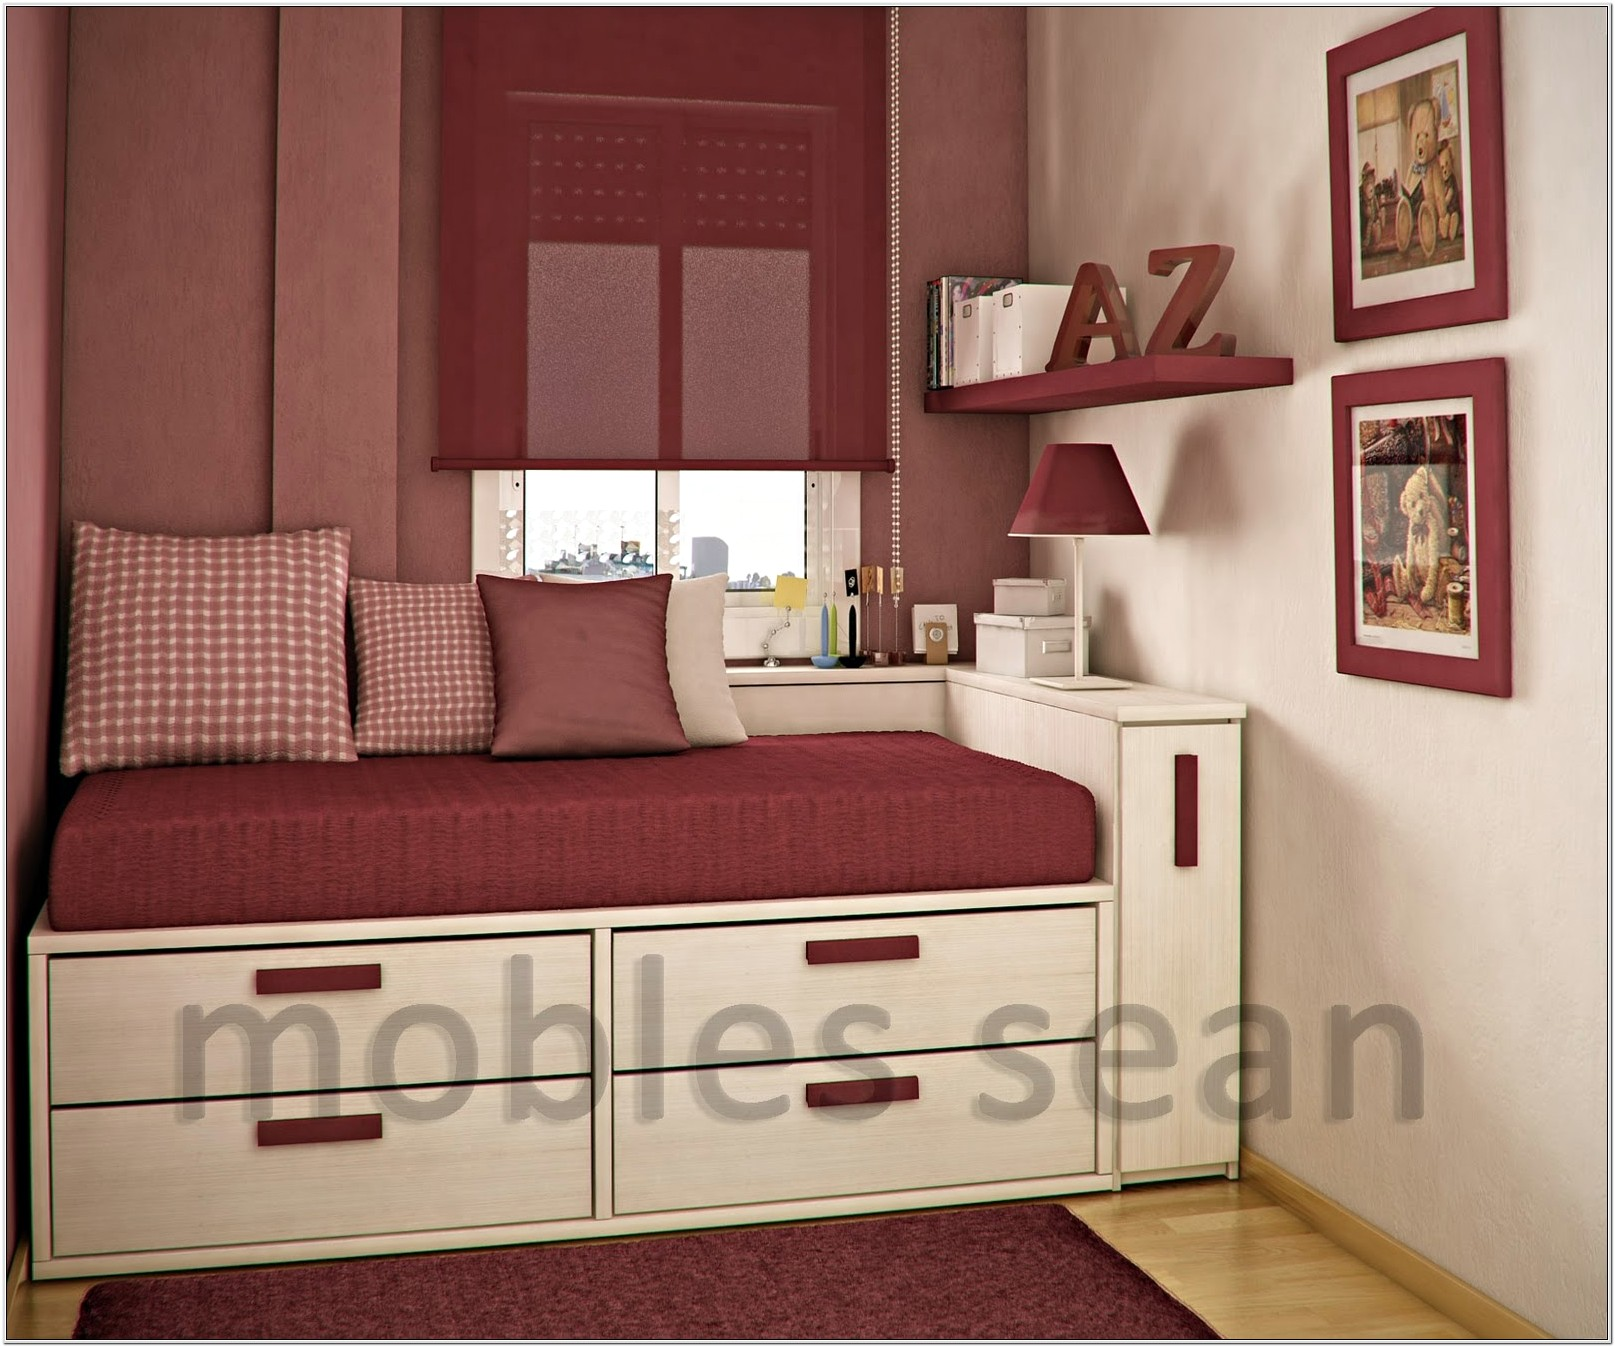 Bedroom Decor Small Spaces